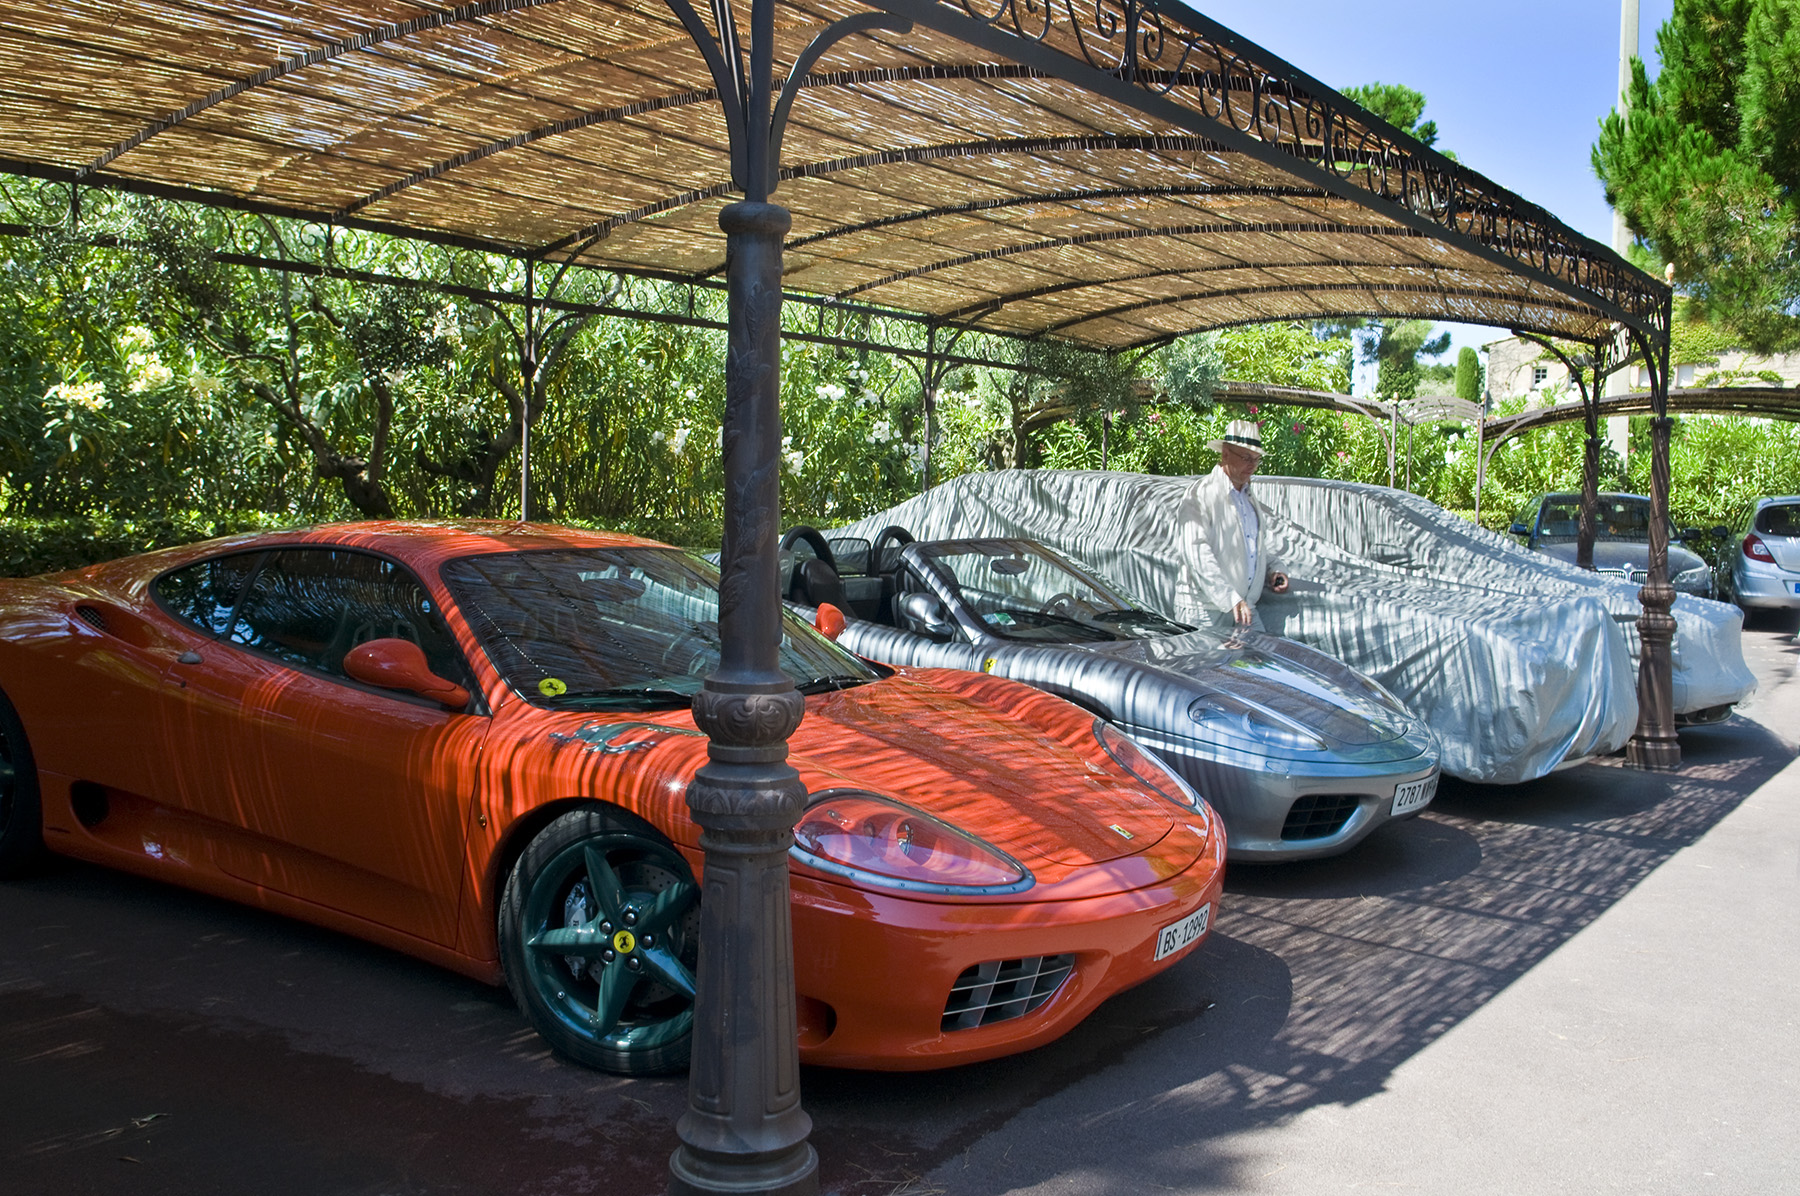 France_French Riviera_Cote d'Azur_luxury cars_